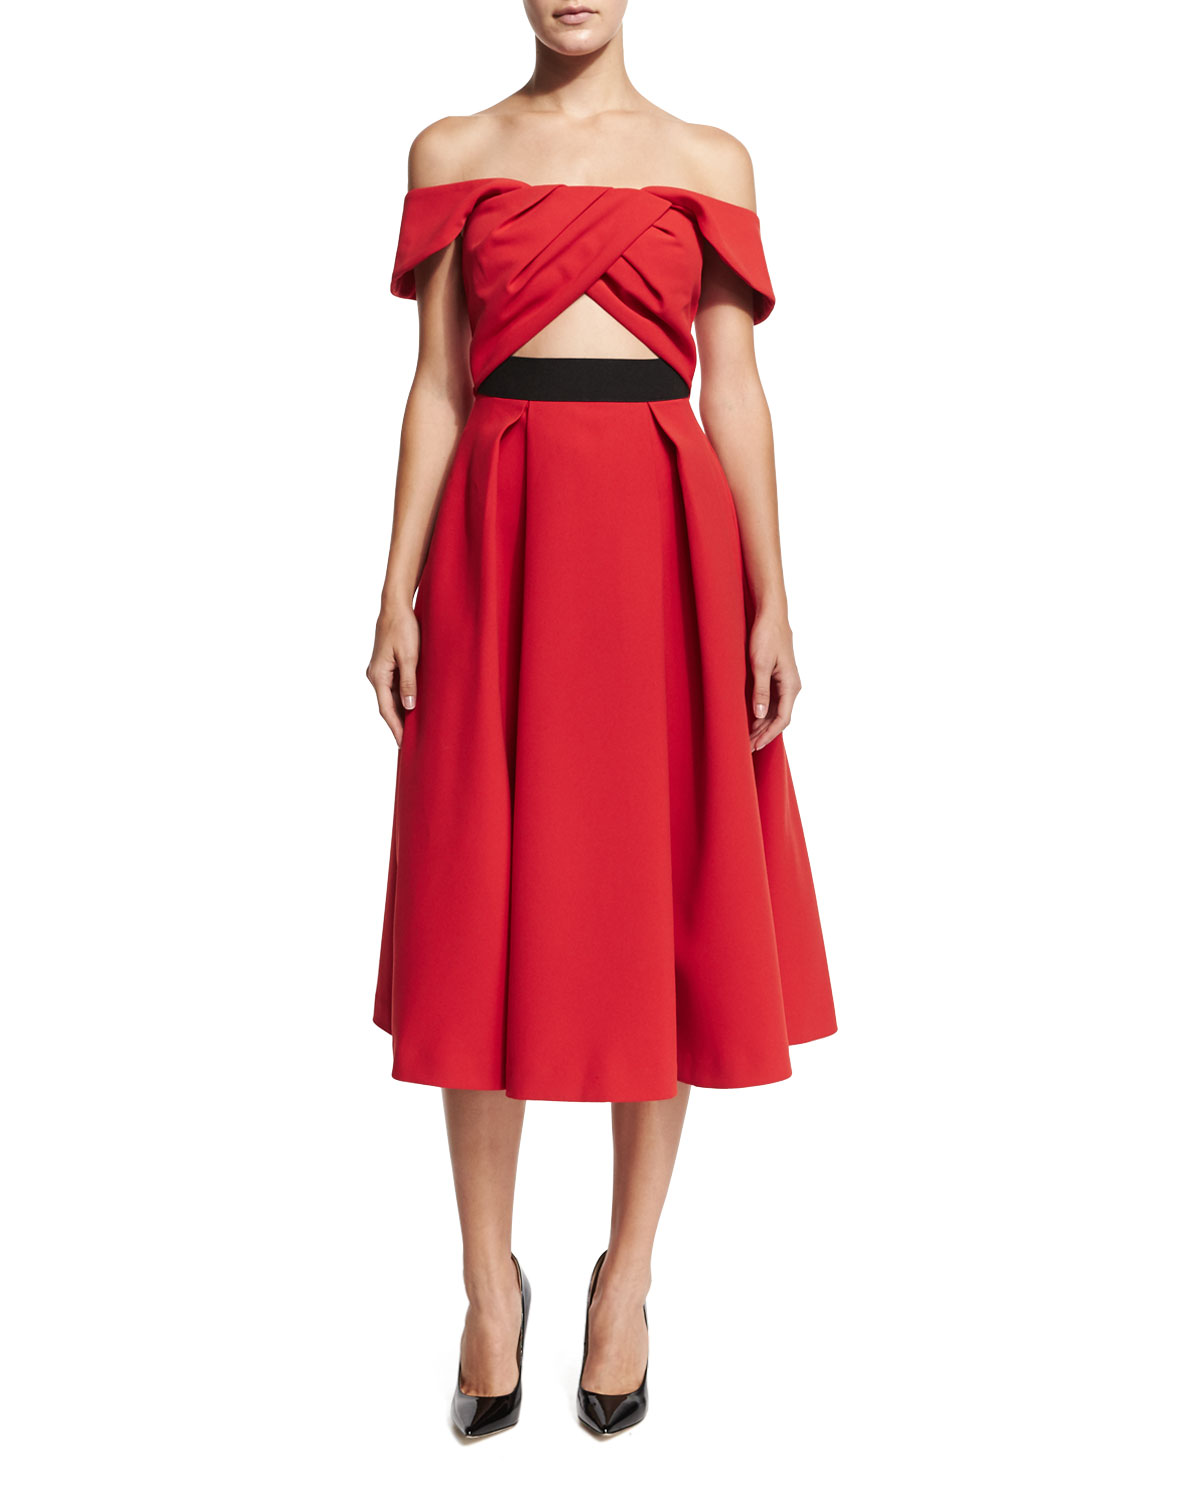 Ayelette Cutout Double-Crepe Dress, Red, Size: 0 - Self Portrait